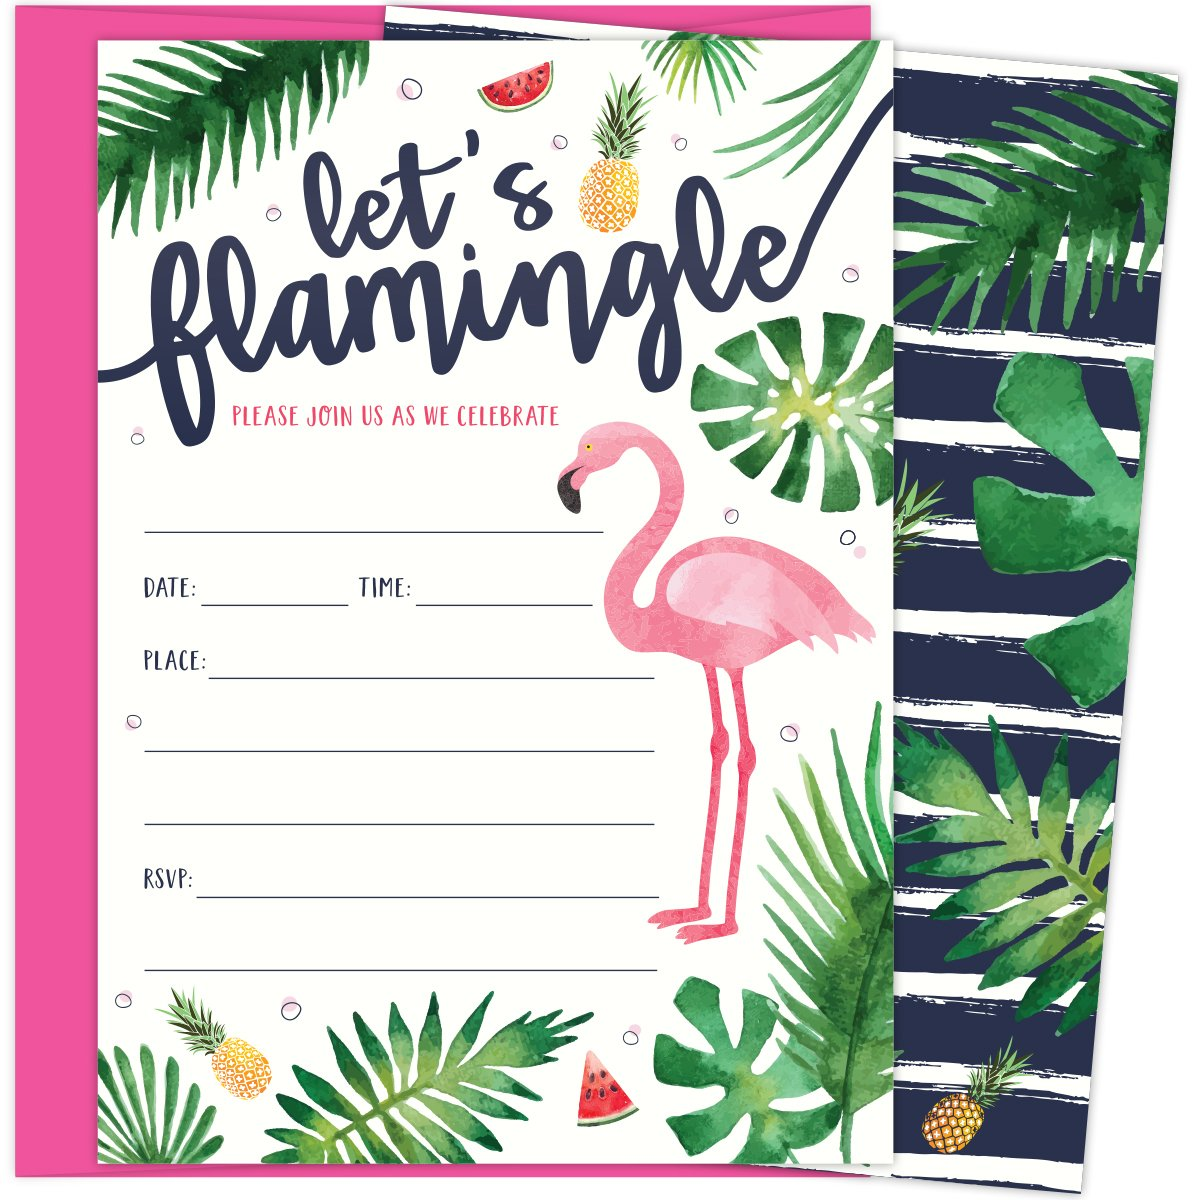 Let's Flamingle Party Invitations with Pink Flamingo and Palm Leaves. 25 Hot Pink Envelopes and Fill in Invites for Soirees, Bridal Showers, Baby Showers, Birthdays, Graduations, Summer Parties by Koko Paper Co